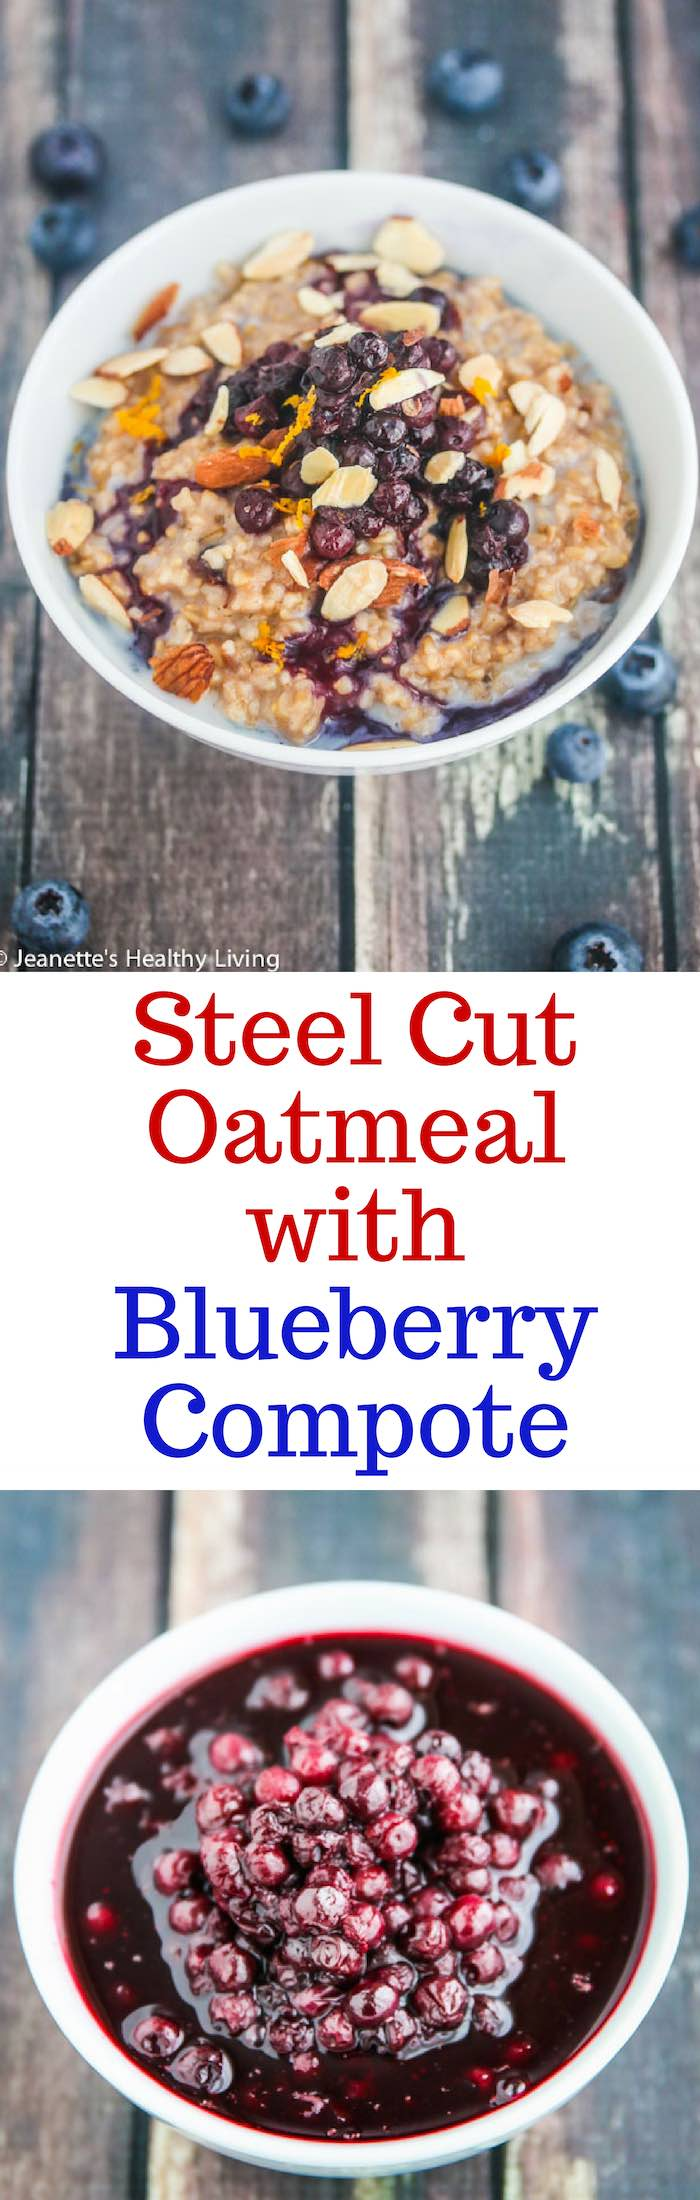 Steel Cut Oatmeal with Blueberry Compote - healthy warm spiced oats for breakfast with vibrant blueberry topping